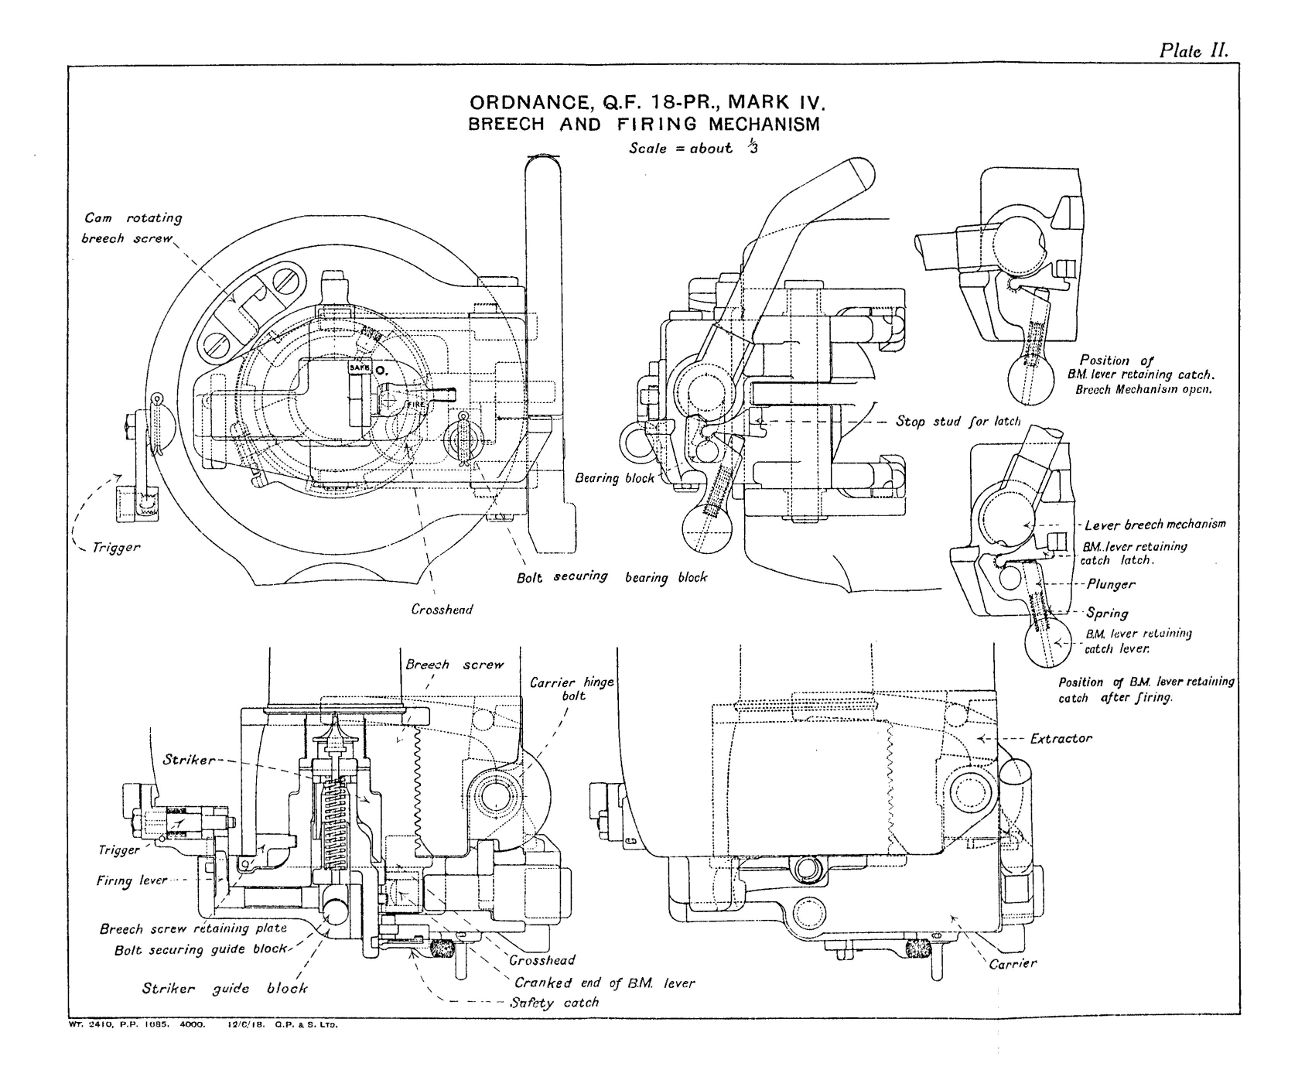 File Qf 18 Pounder Mark Iv Breech And Firing Mechanism Diagrams